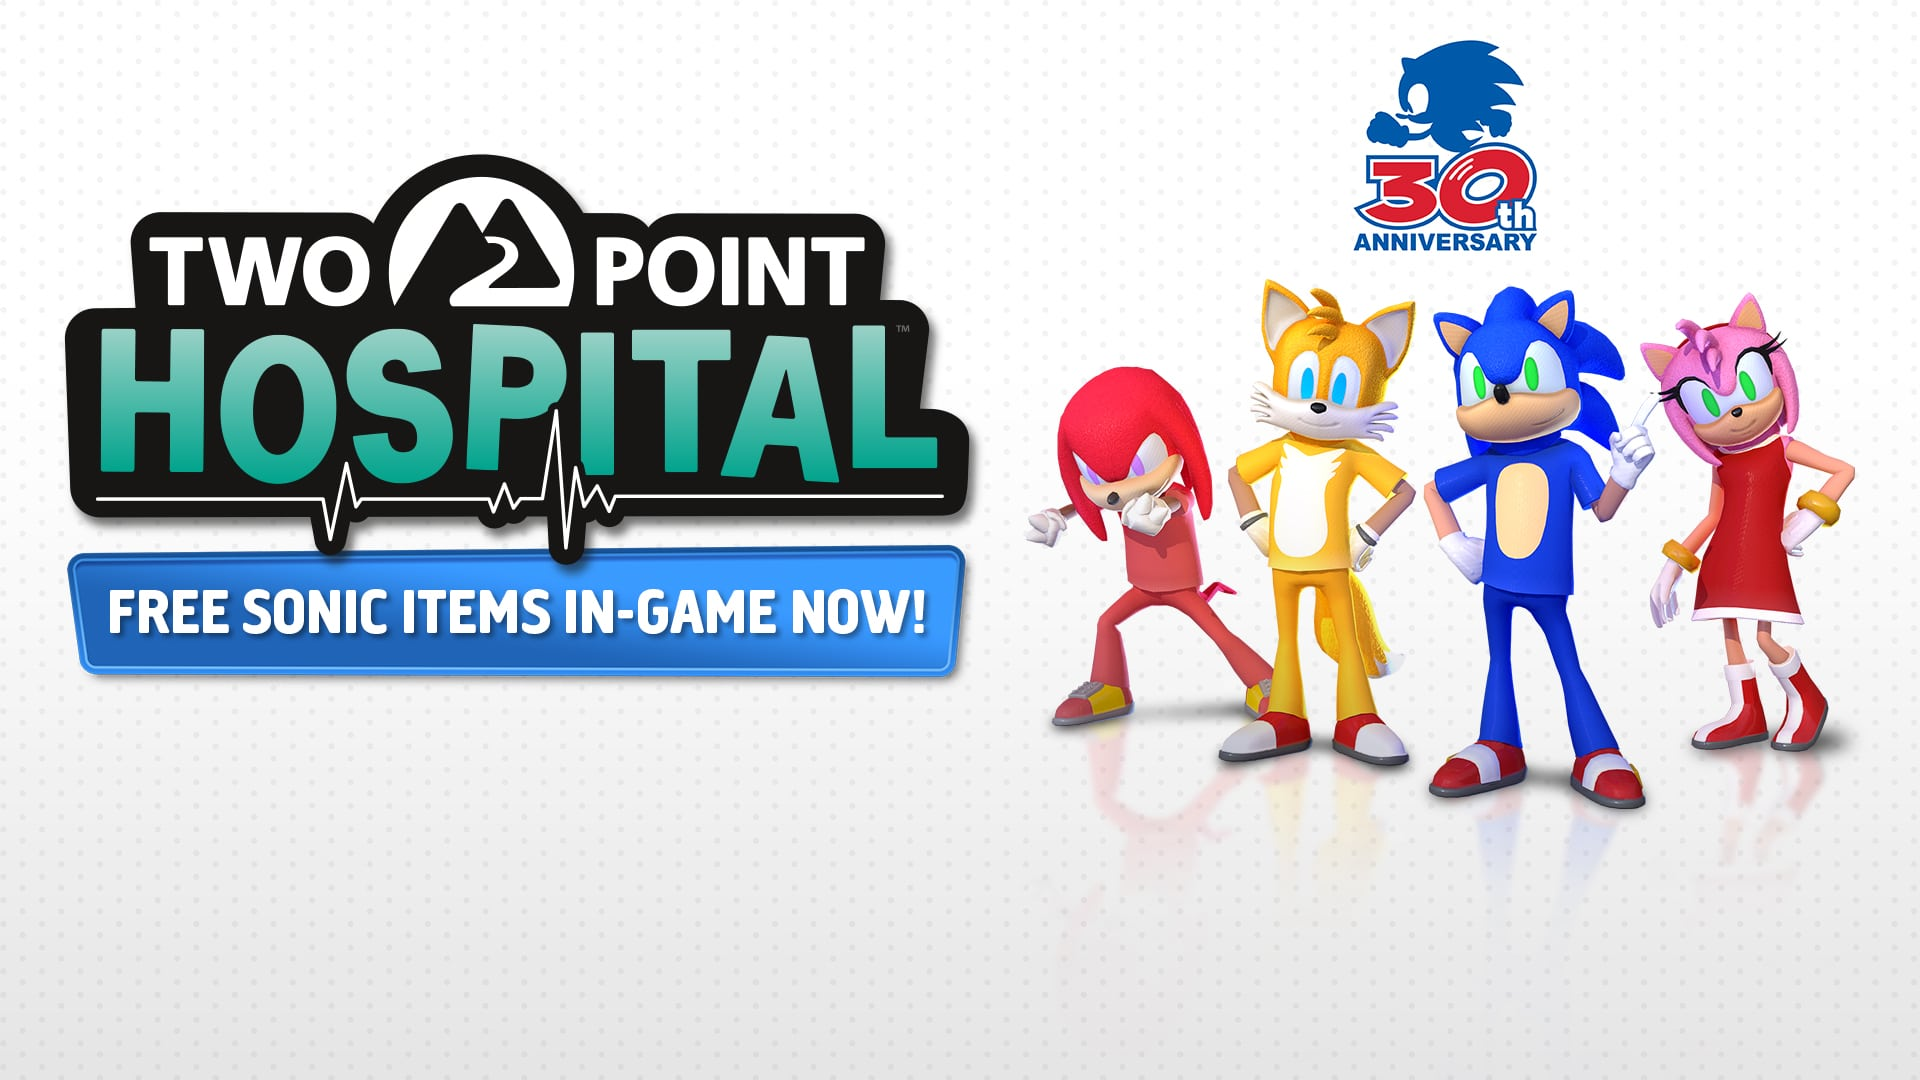 Two Point Hospital Sonic 30th